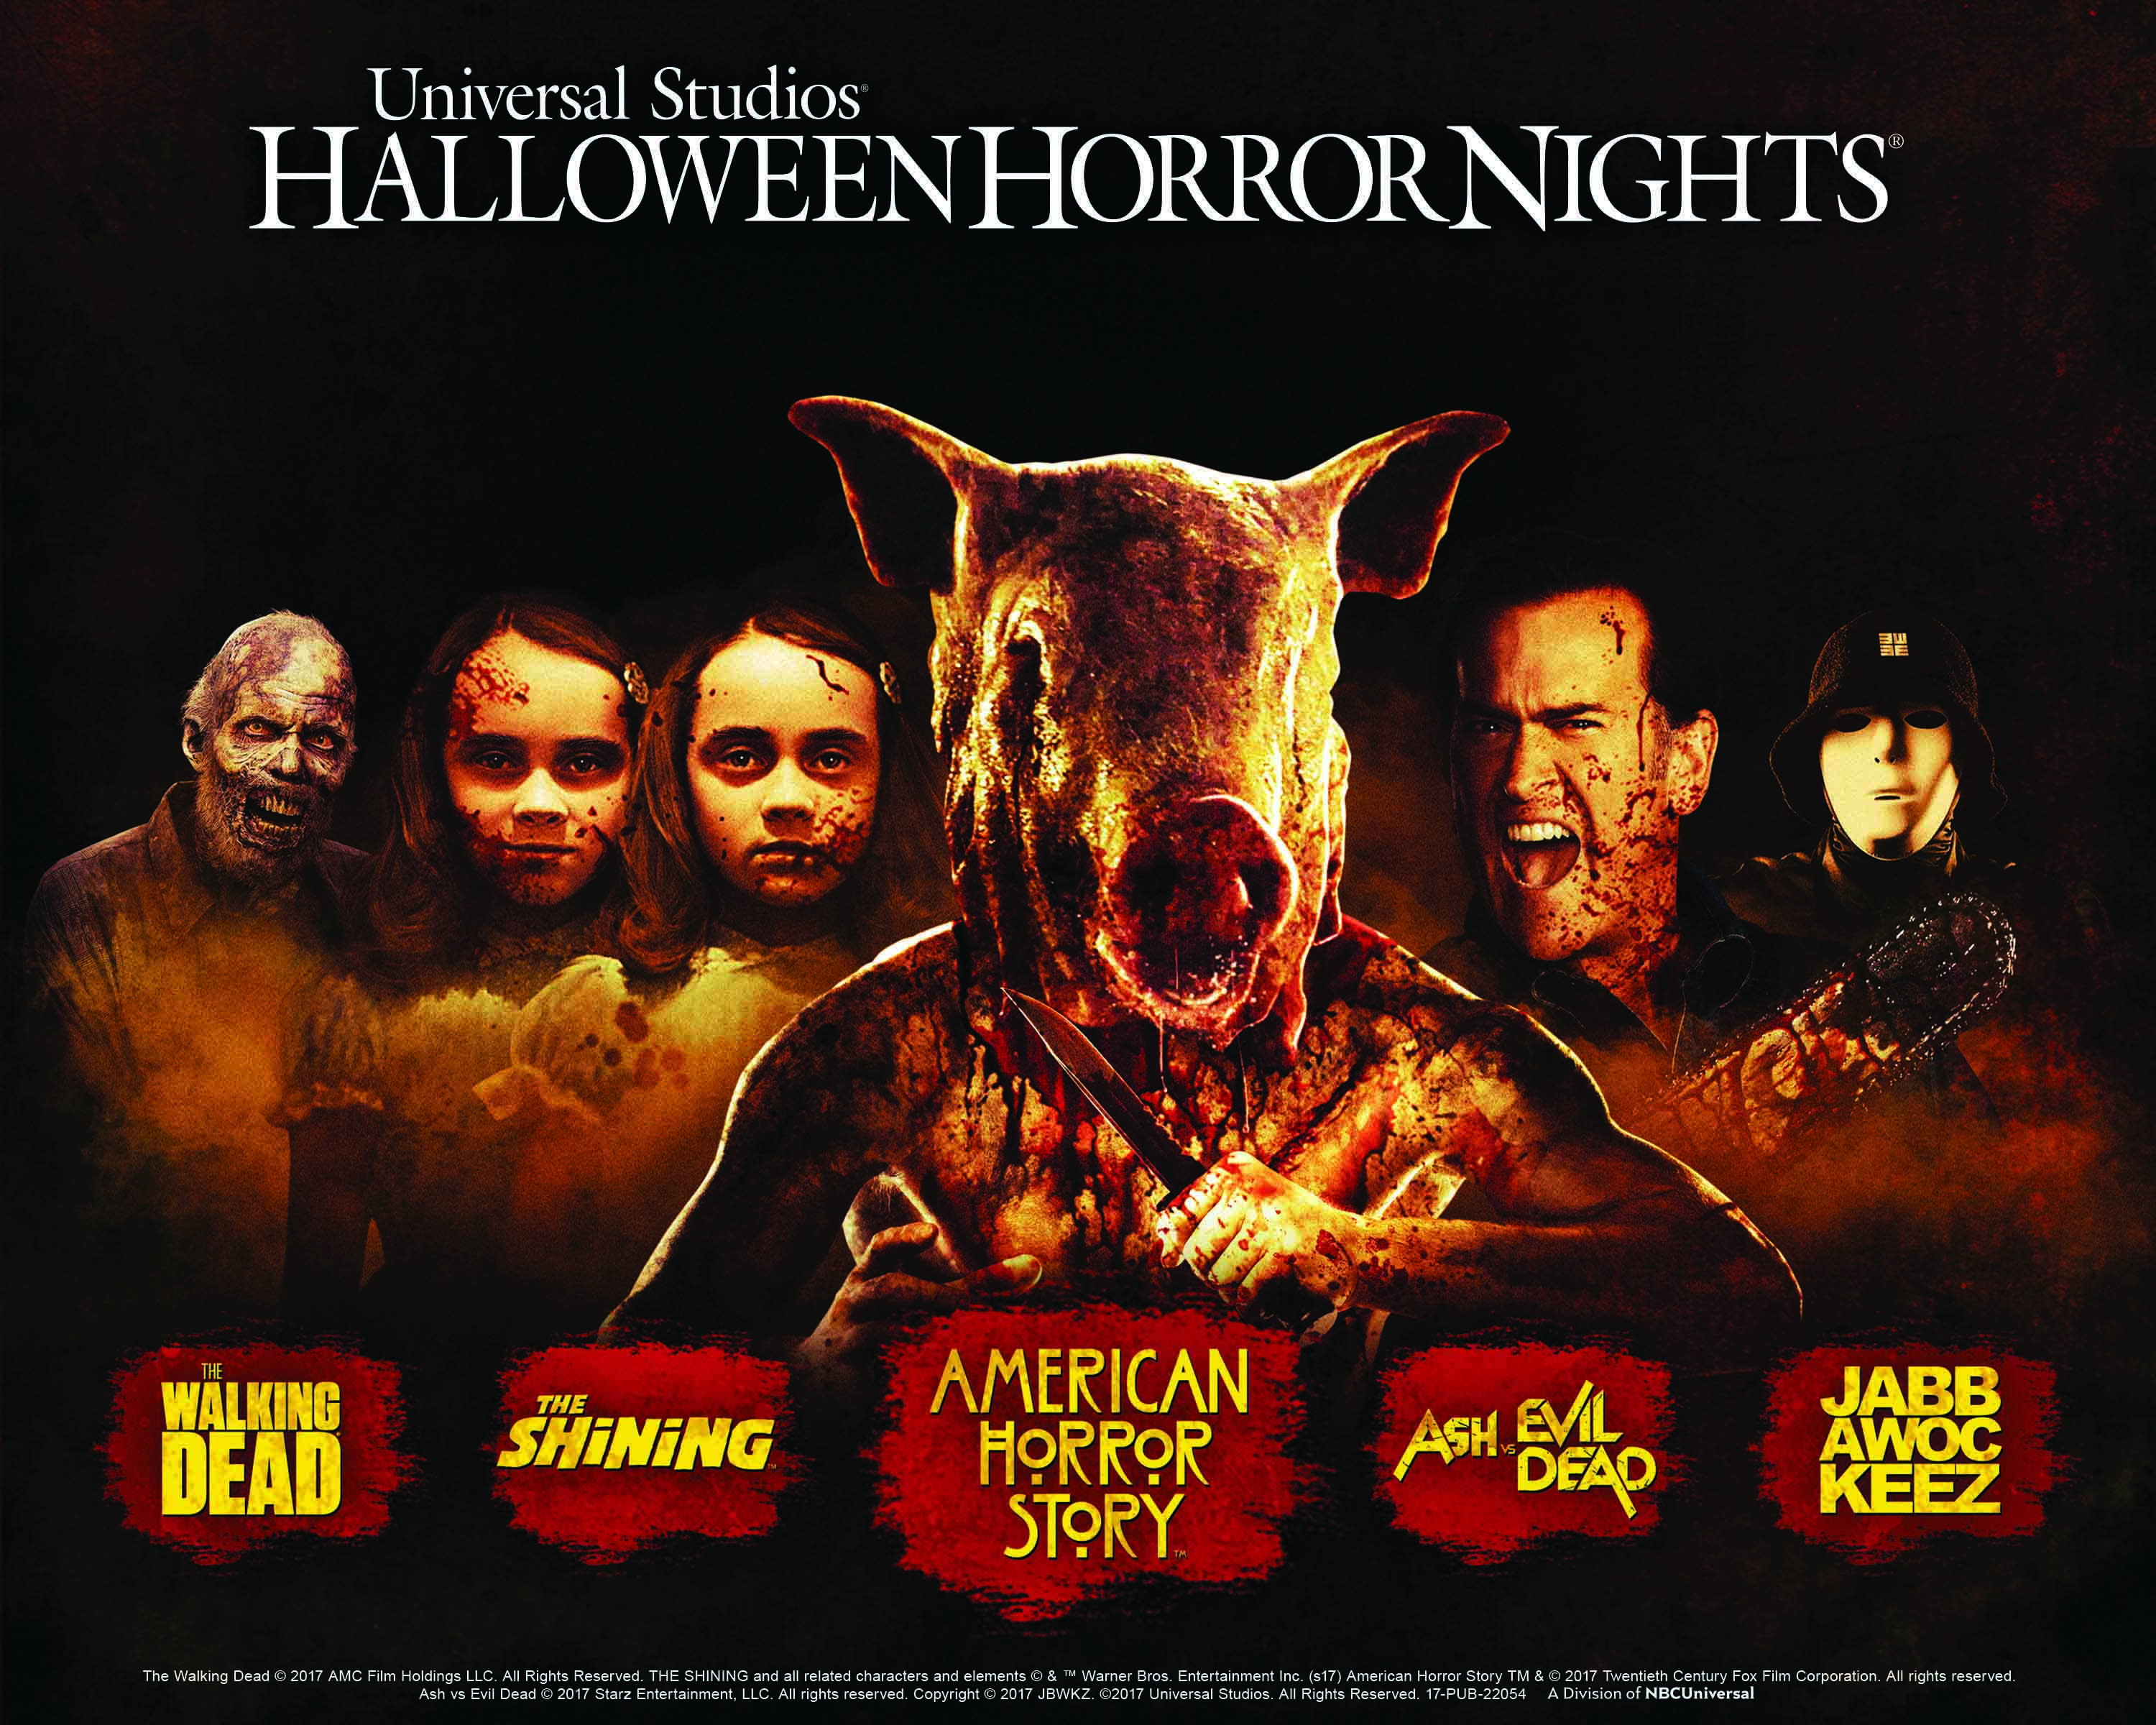 Halloween Horror Nights 2020 Orlando Discounts Ticket pricing and packages released for Halloween Horror Nights